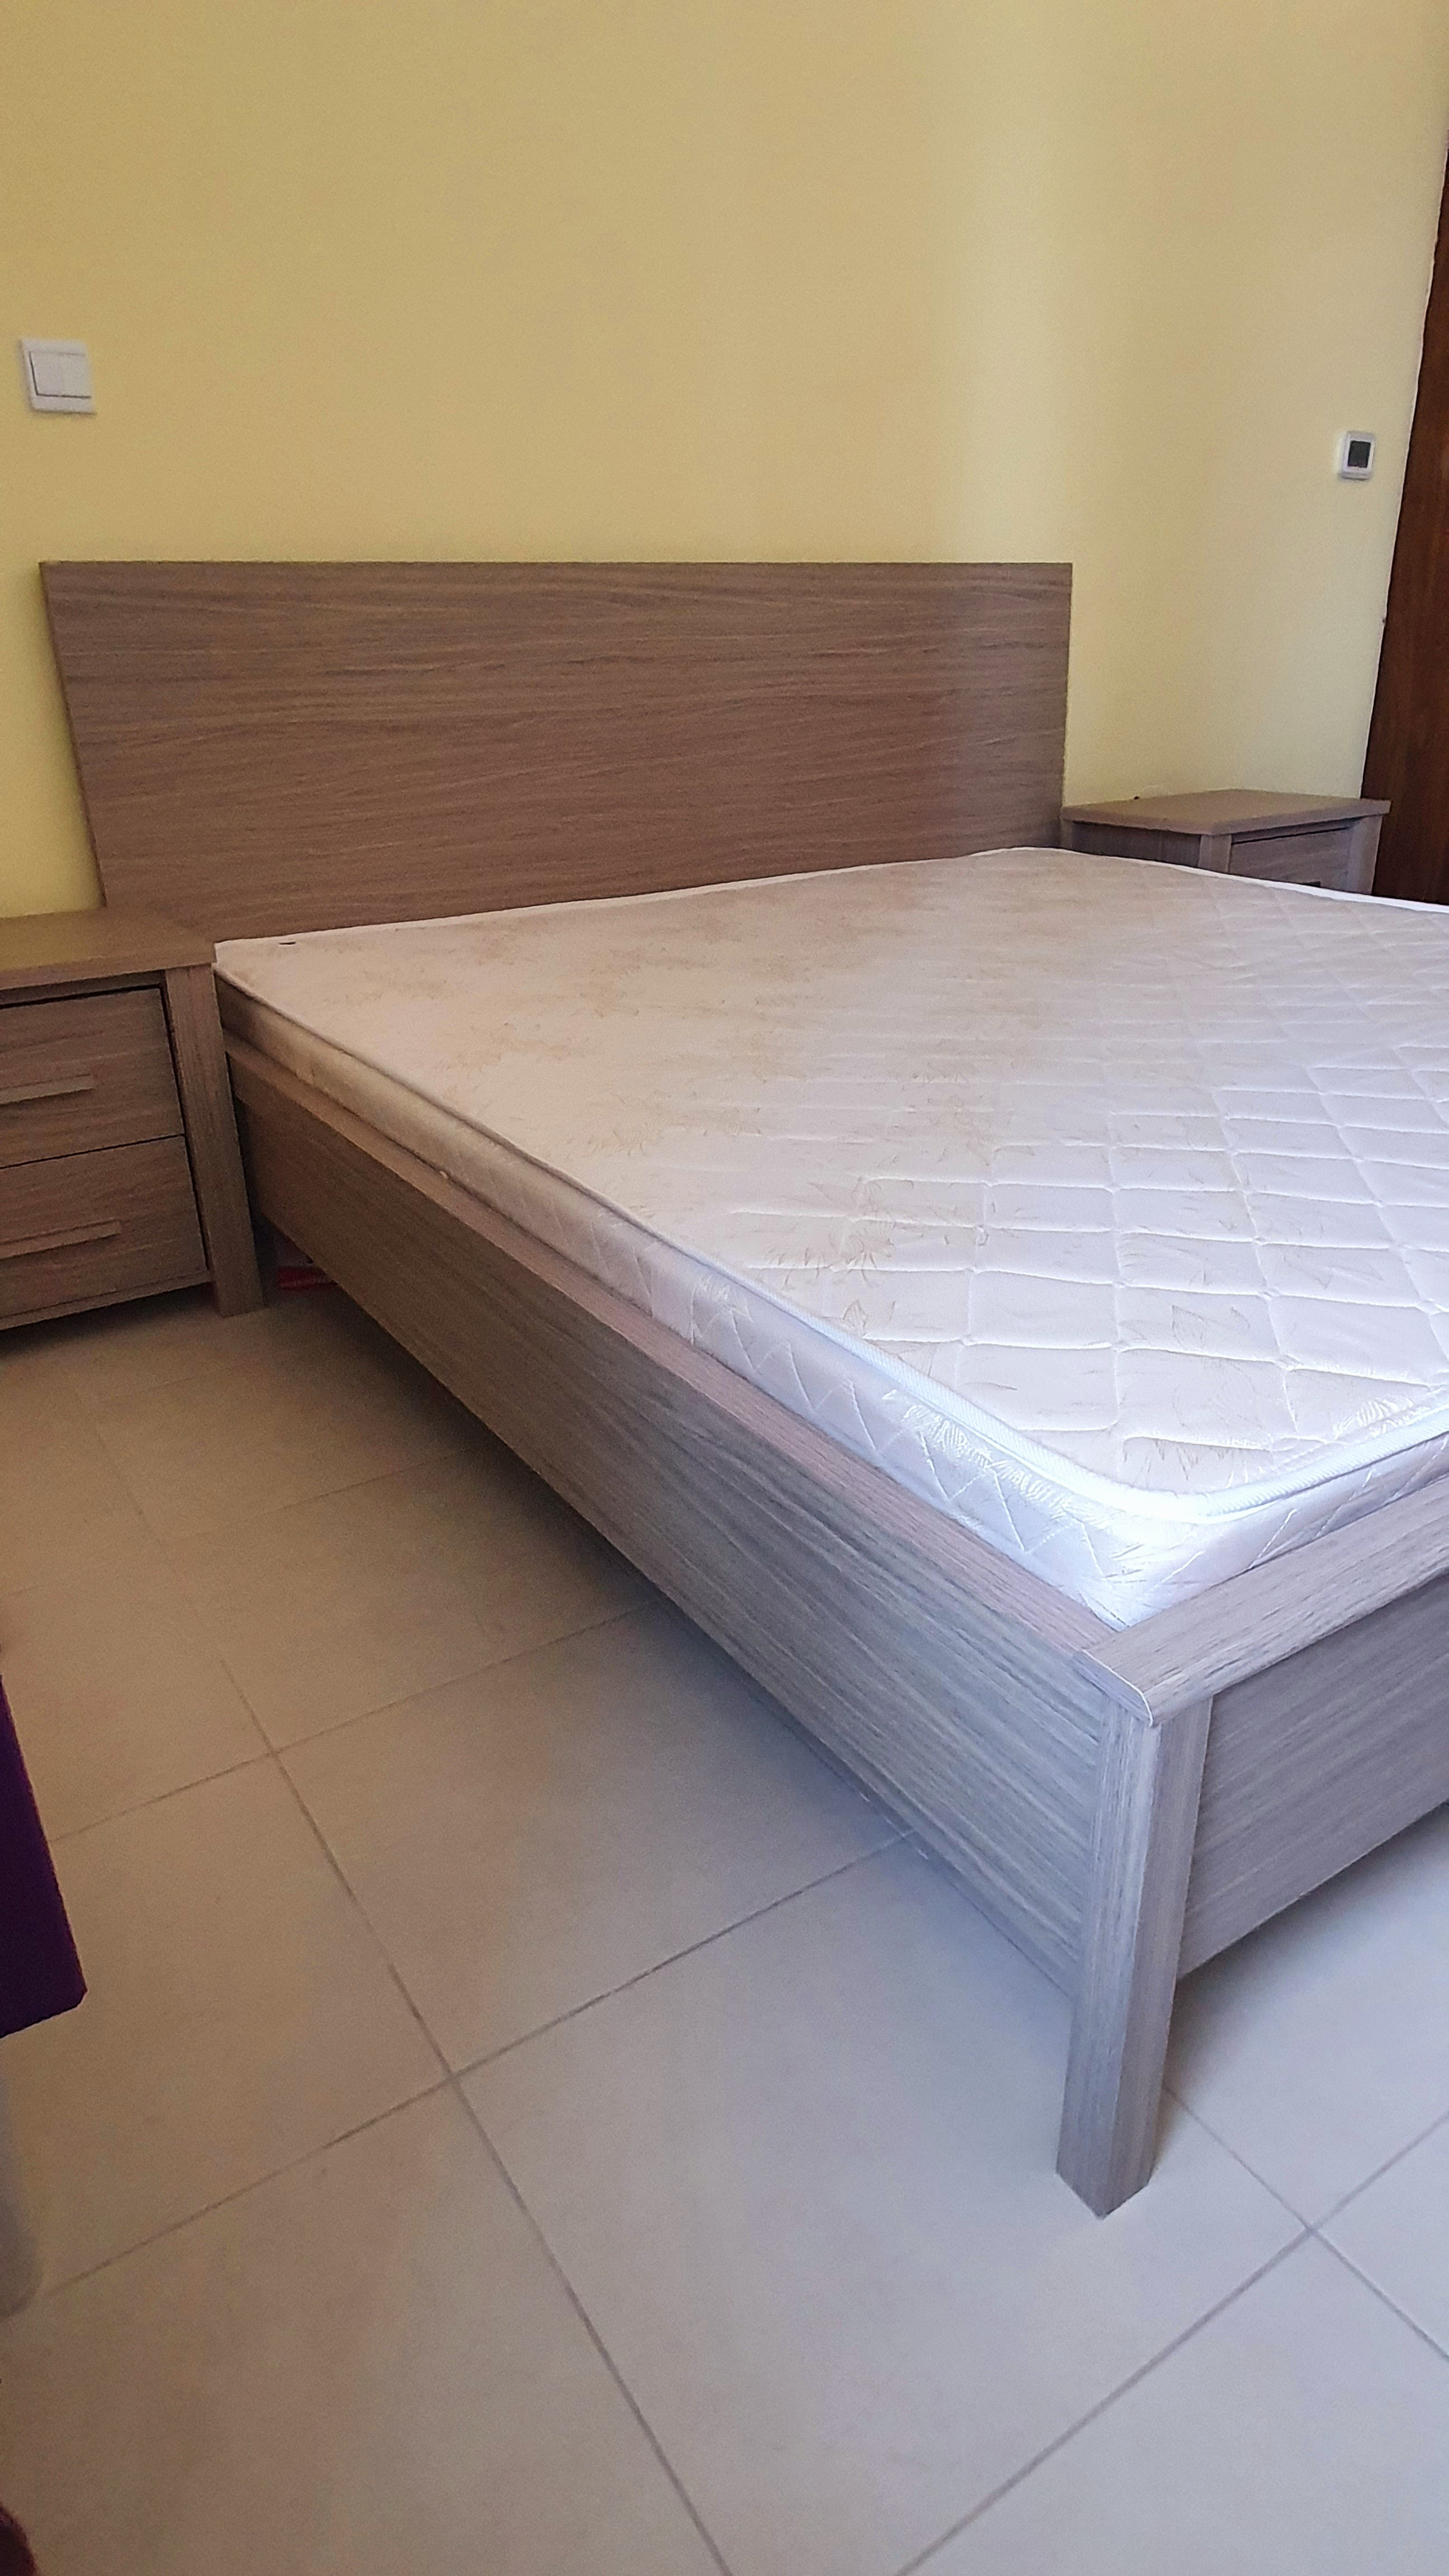 Buy Sale Used Bed And Bed Sets In Cheap Price From Pan Emirates Dubai